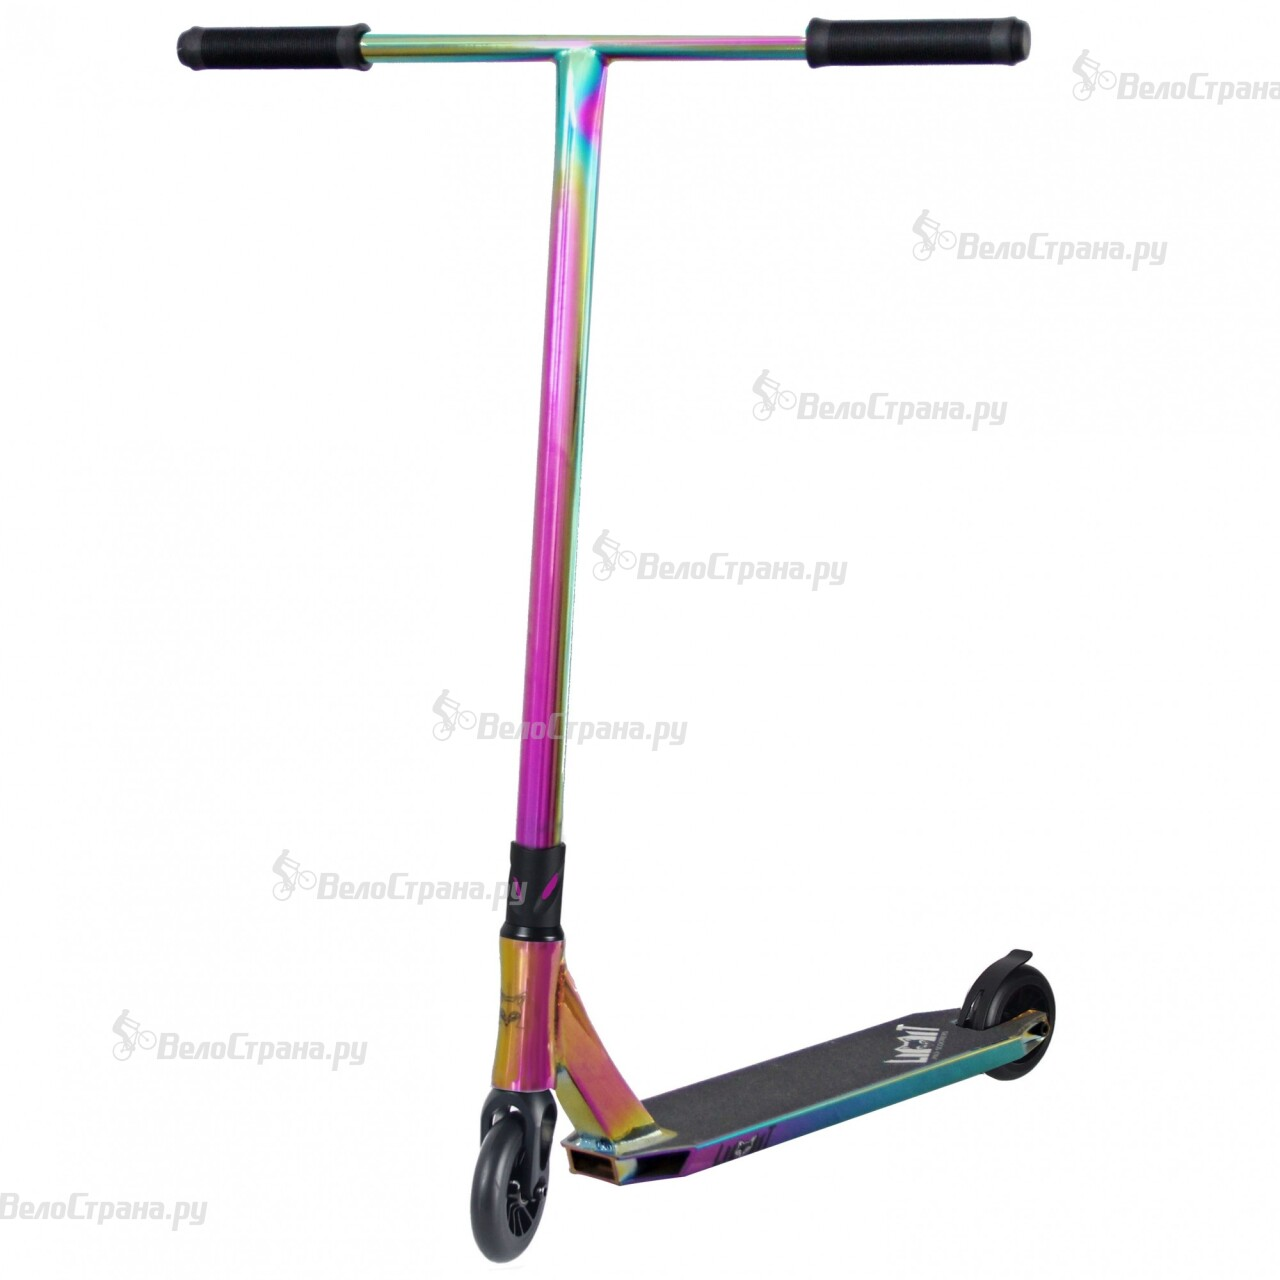 Самокат Limit LMT01 STUNT SCOOTER NEO CHROME